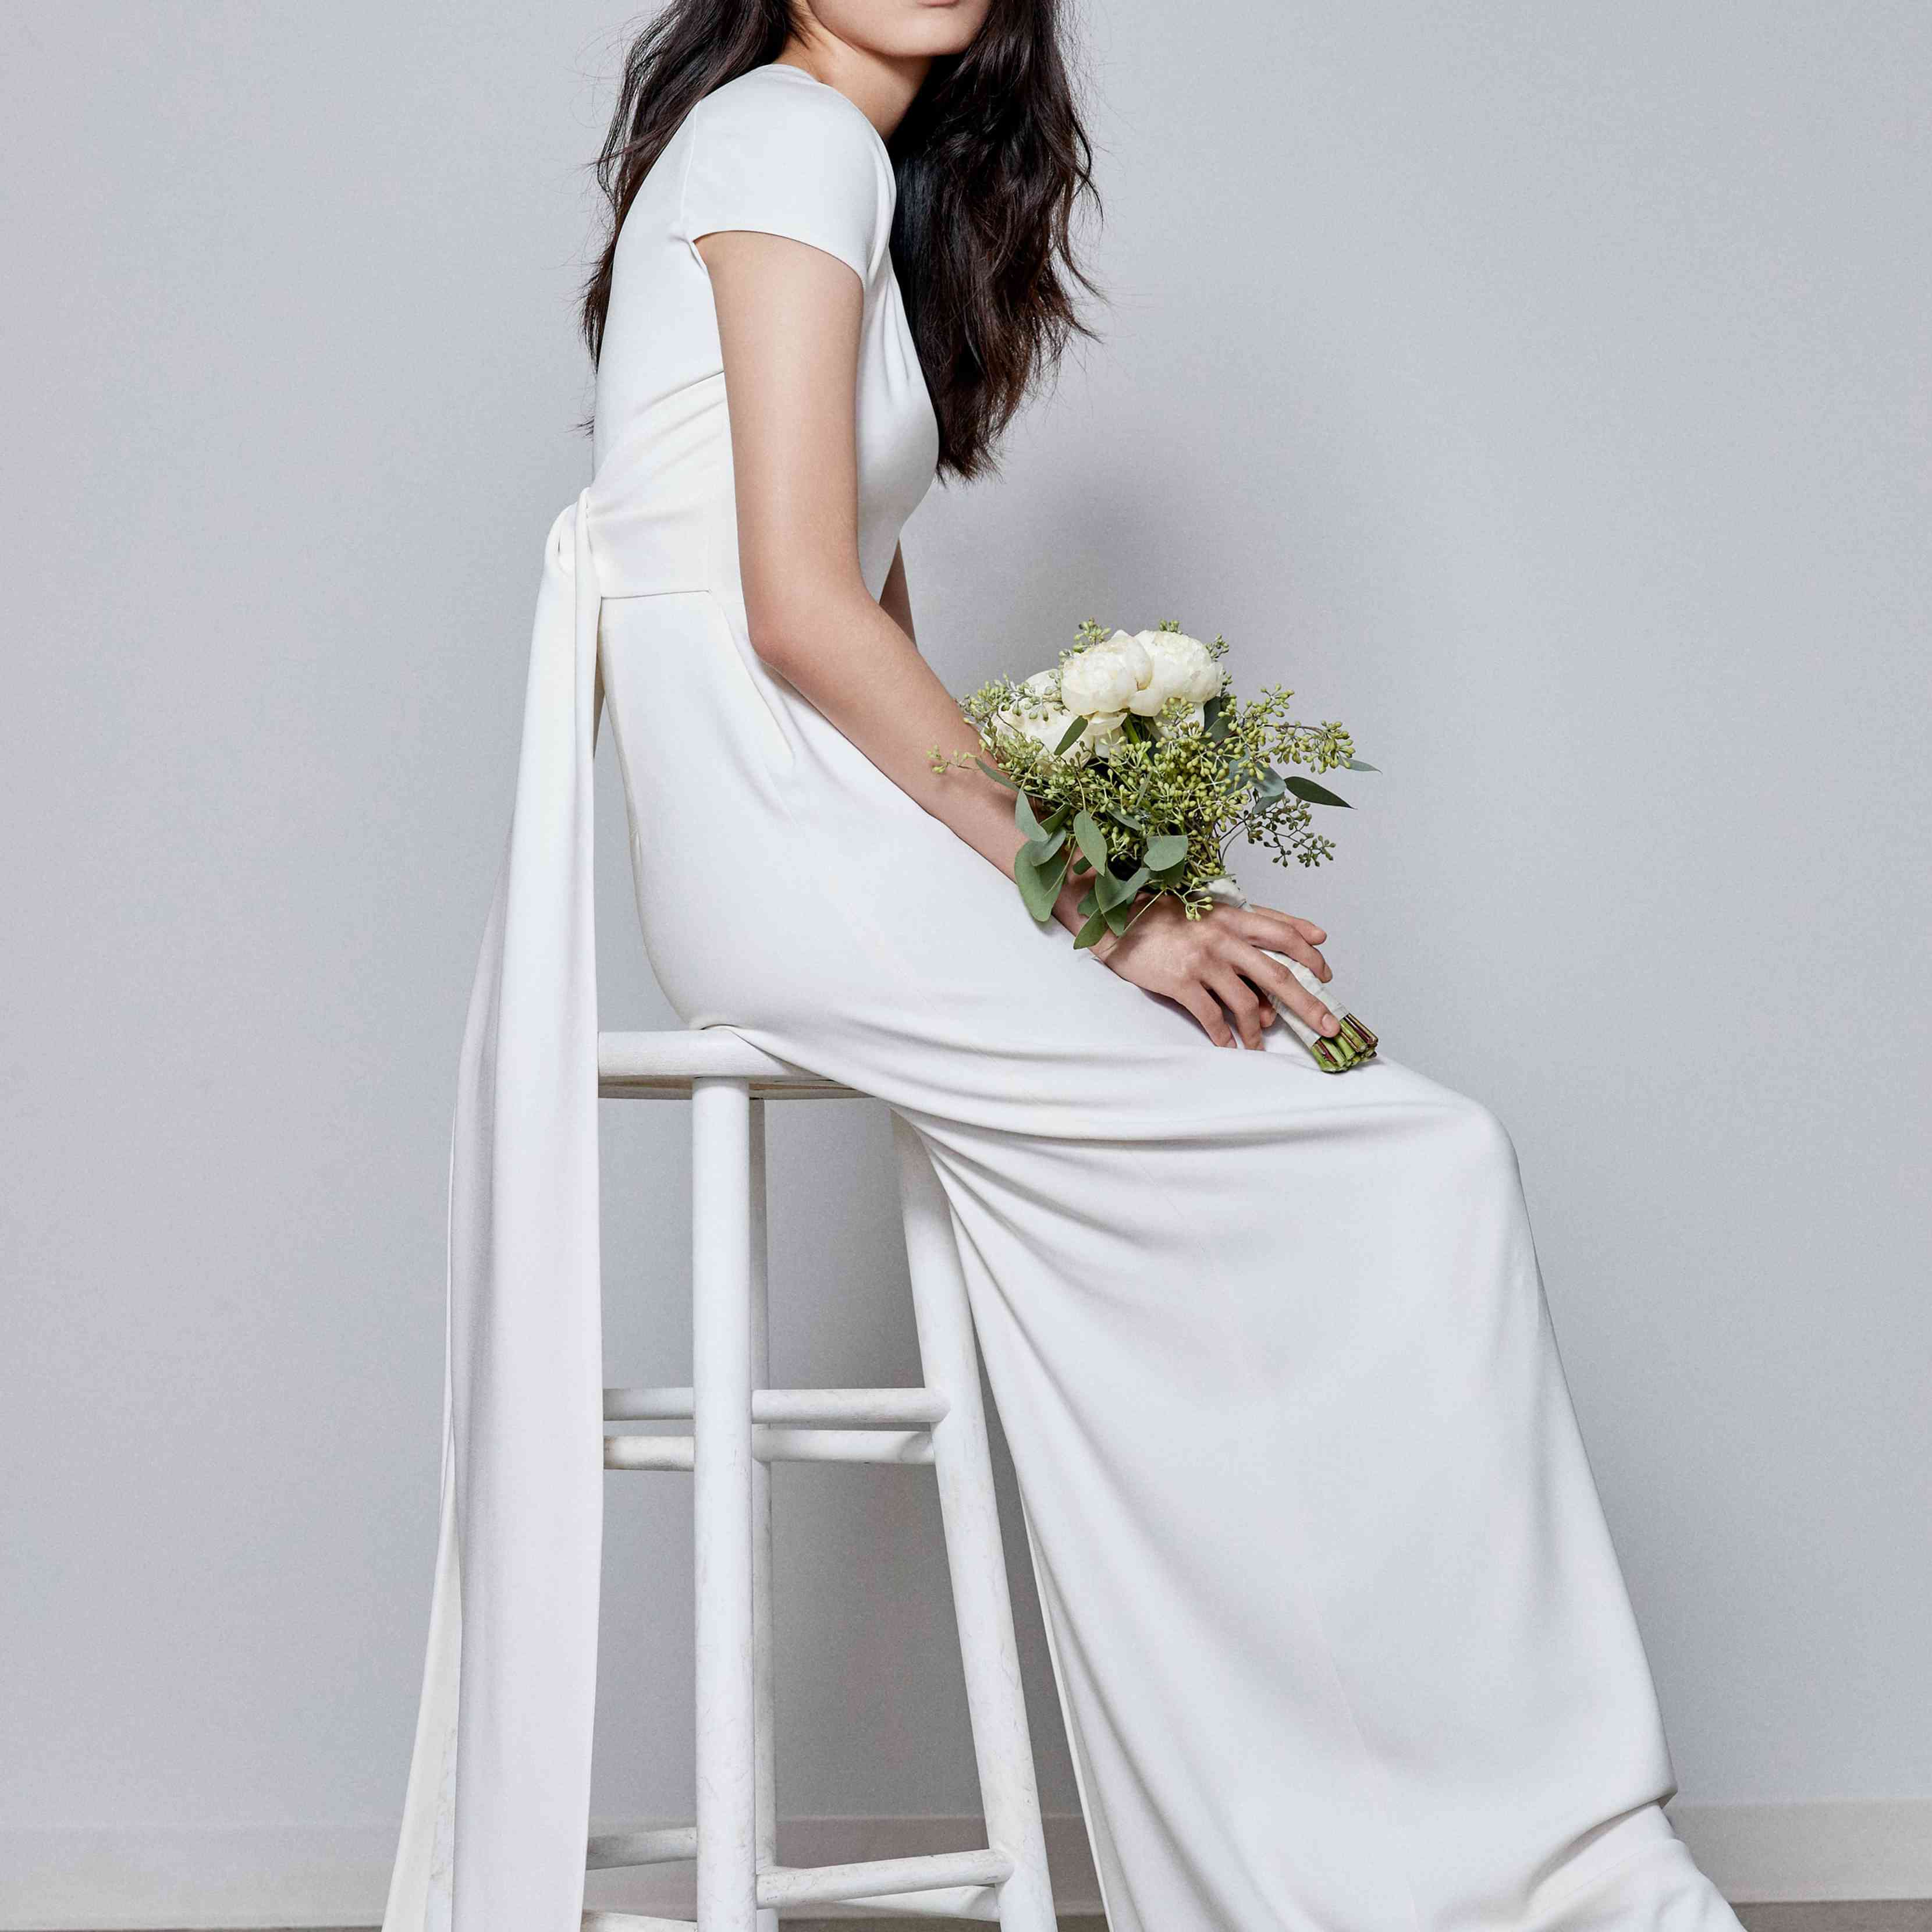 The 29 Best Simple Wedding Dresses Of 2020,Maxi Dress For Summer Wedding